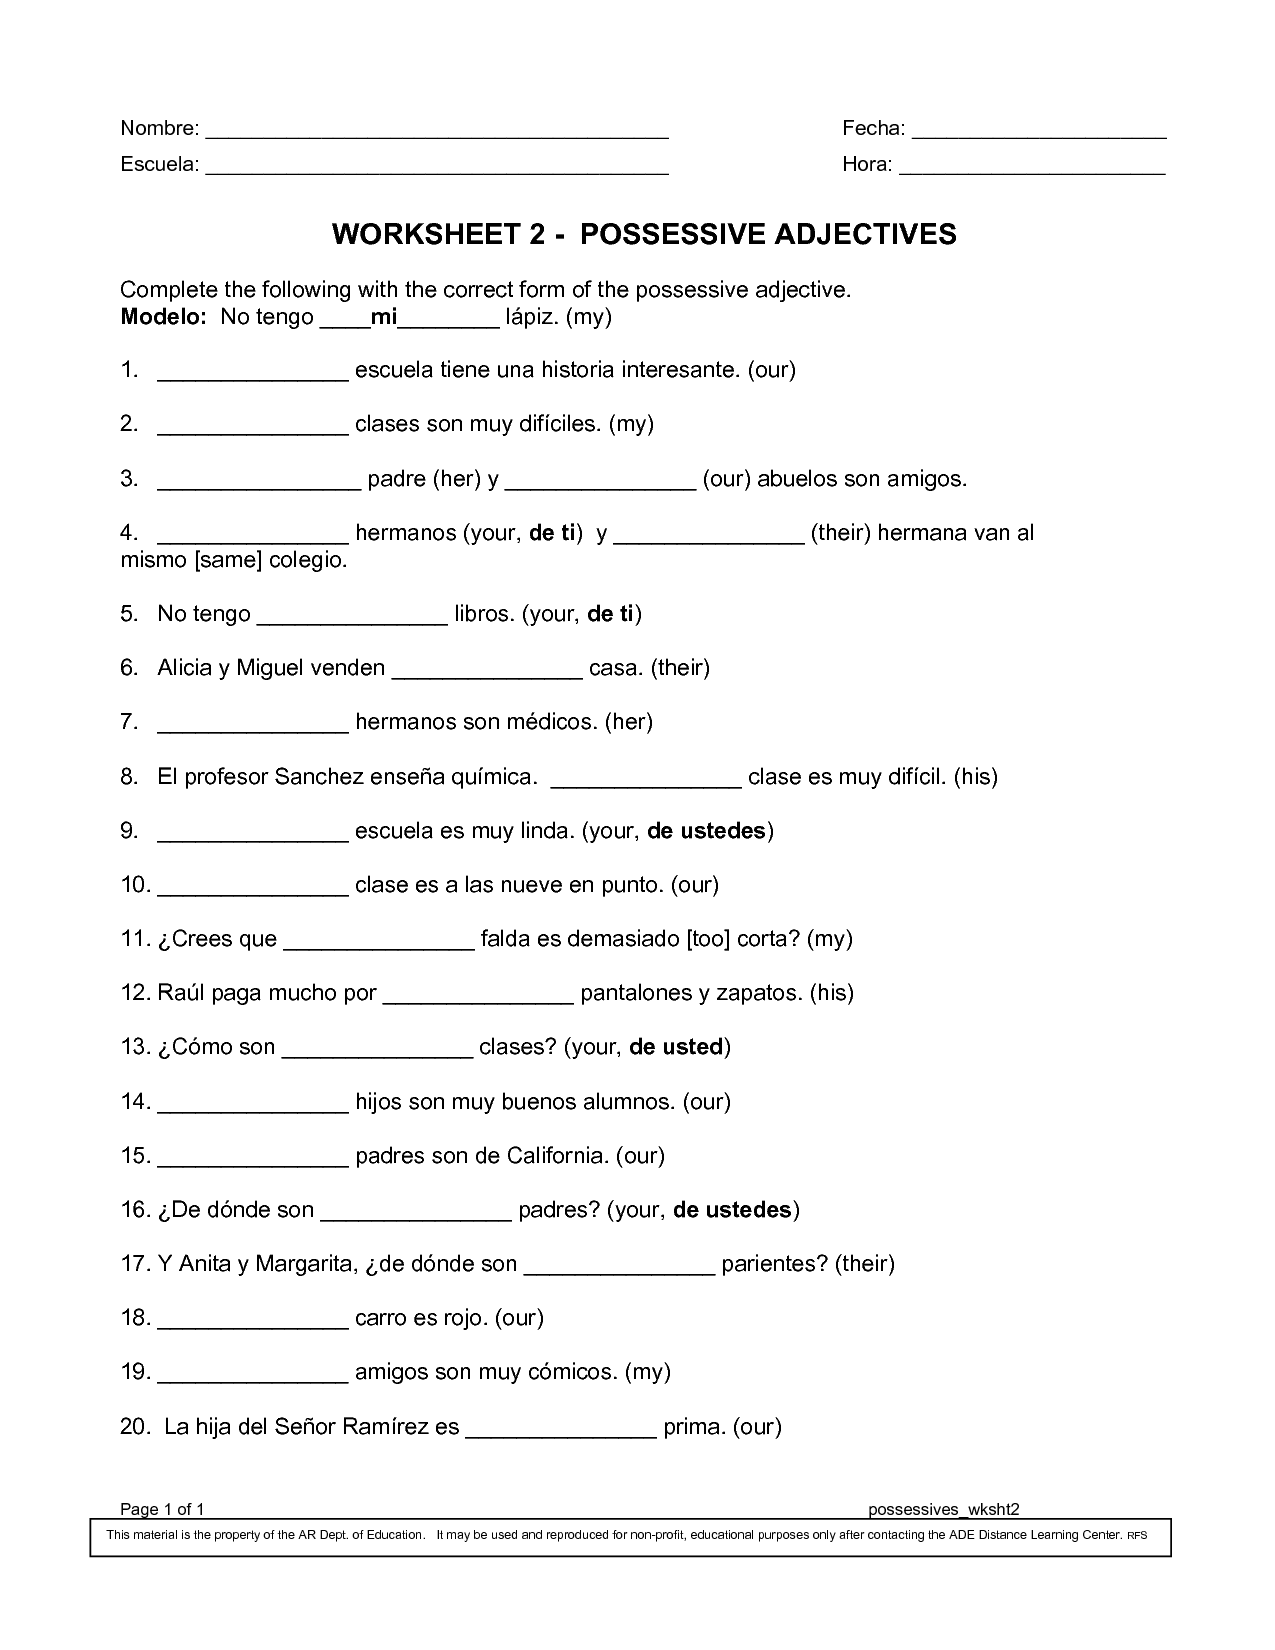 39 Awesome Possessives Adjectives Worksheet Images